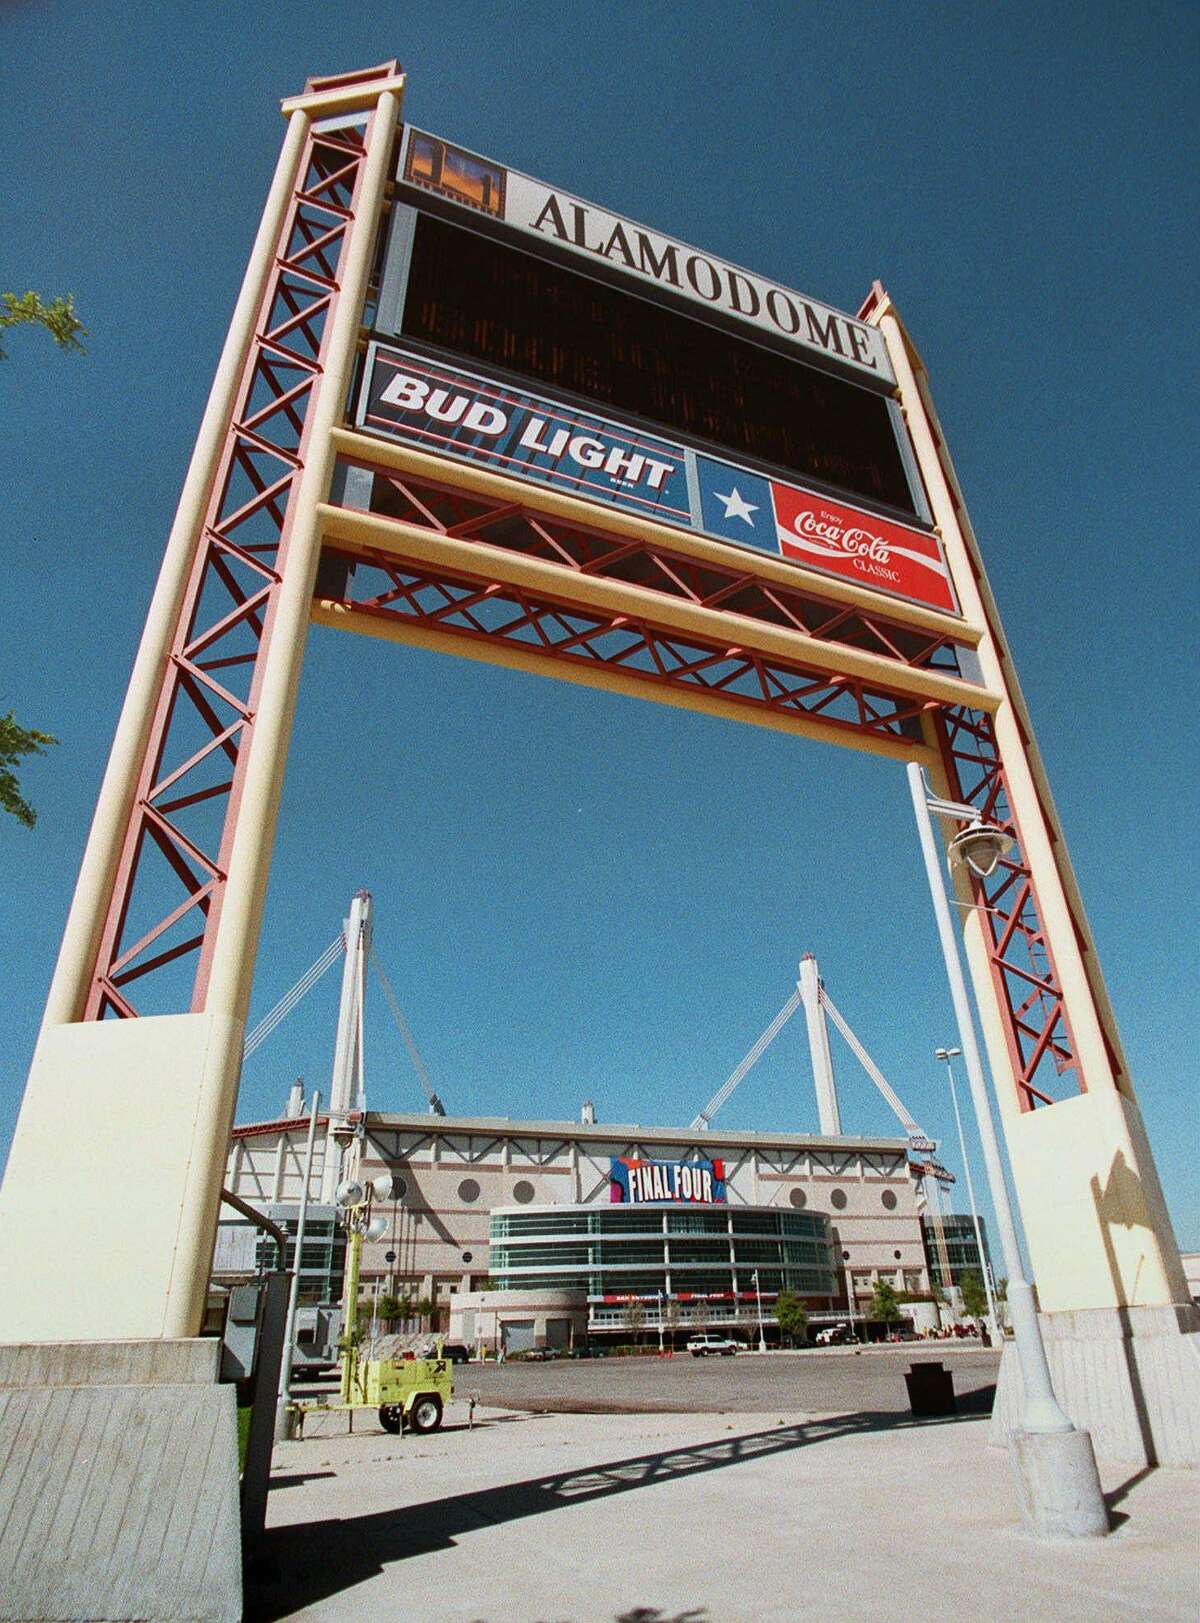 The Alamodome hosted the NCAA Men's Final Four in March 1998.